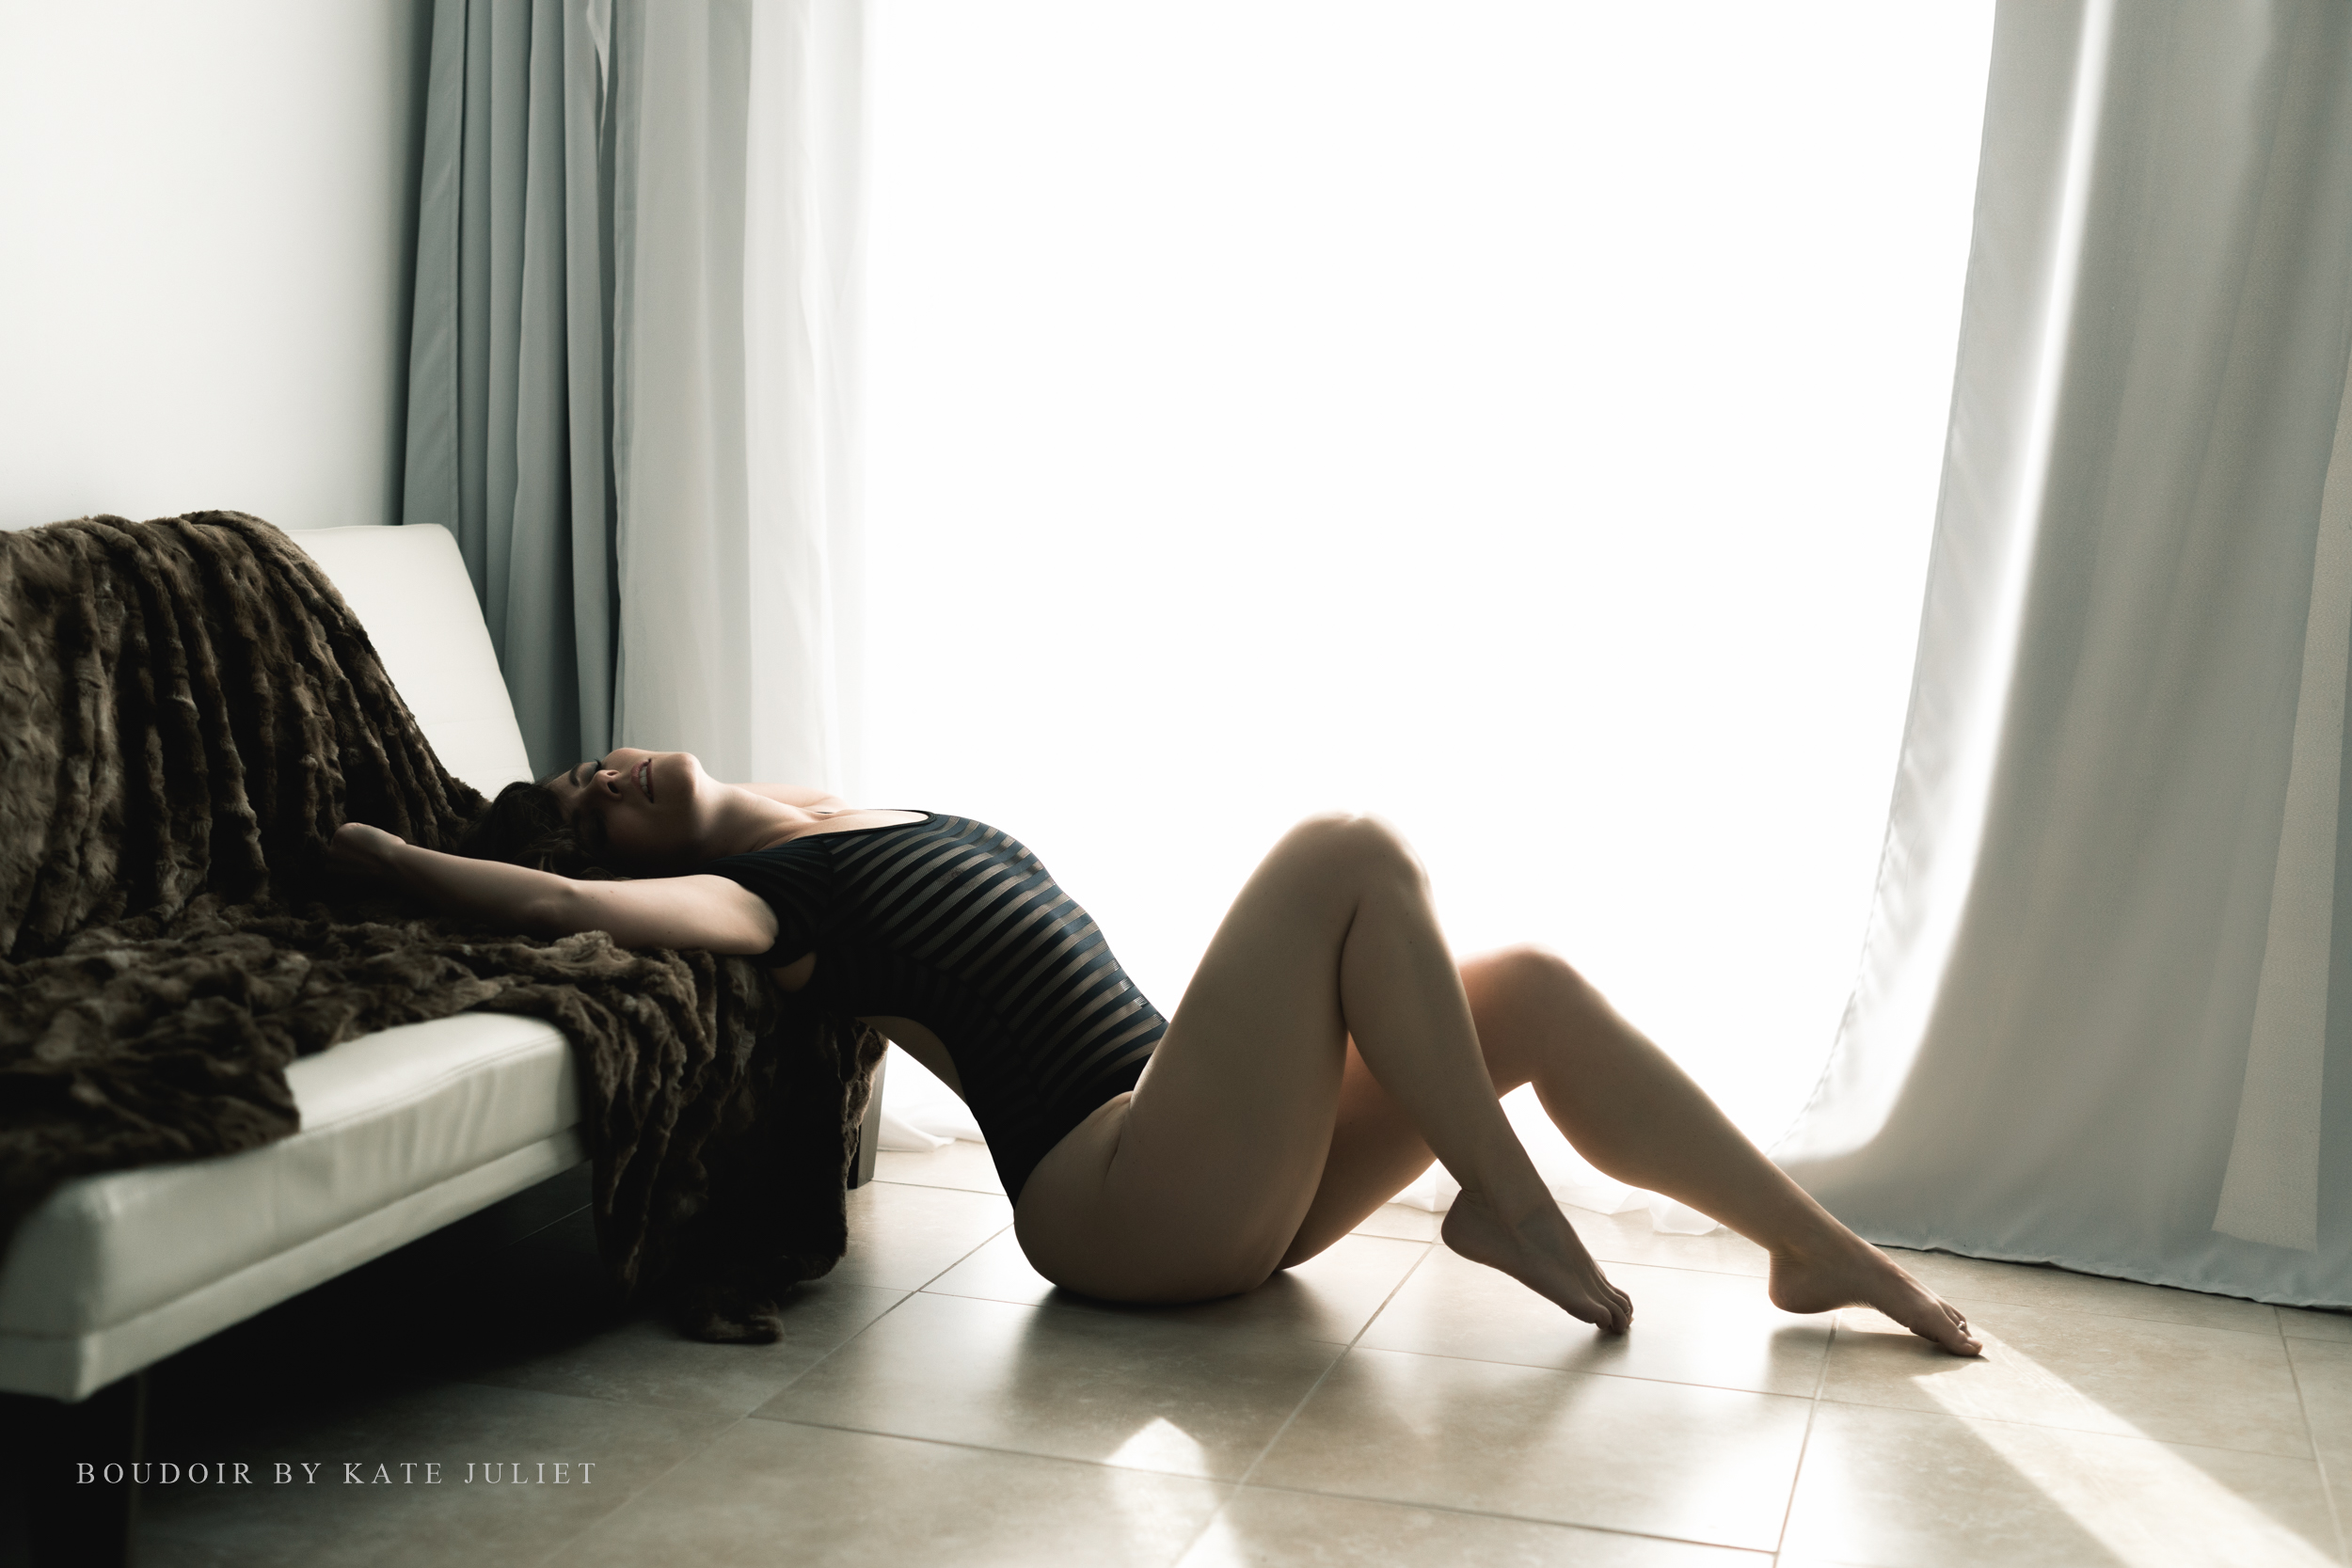 kate juliet photography - boudoir - web-27.jpg